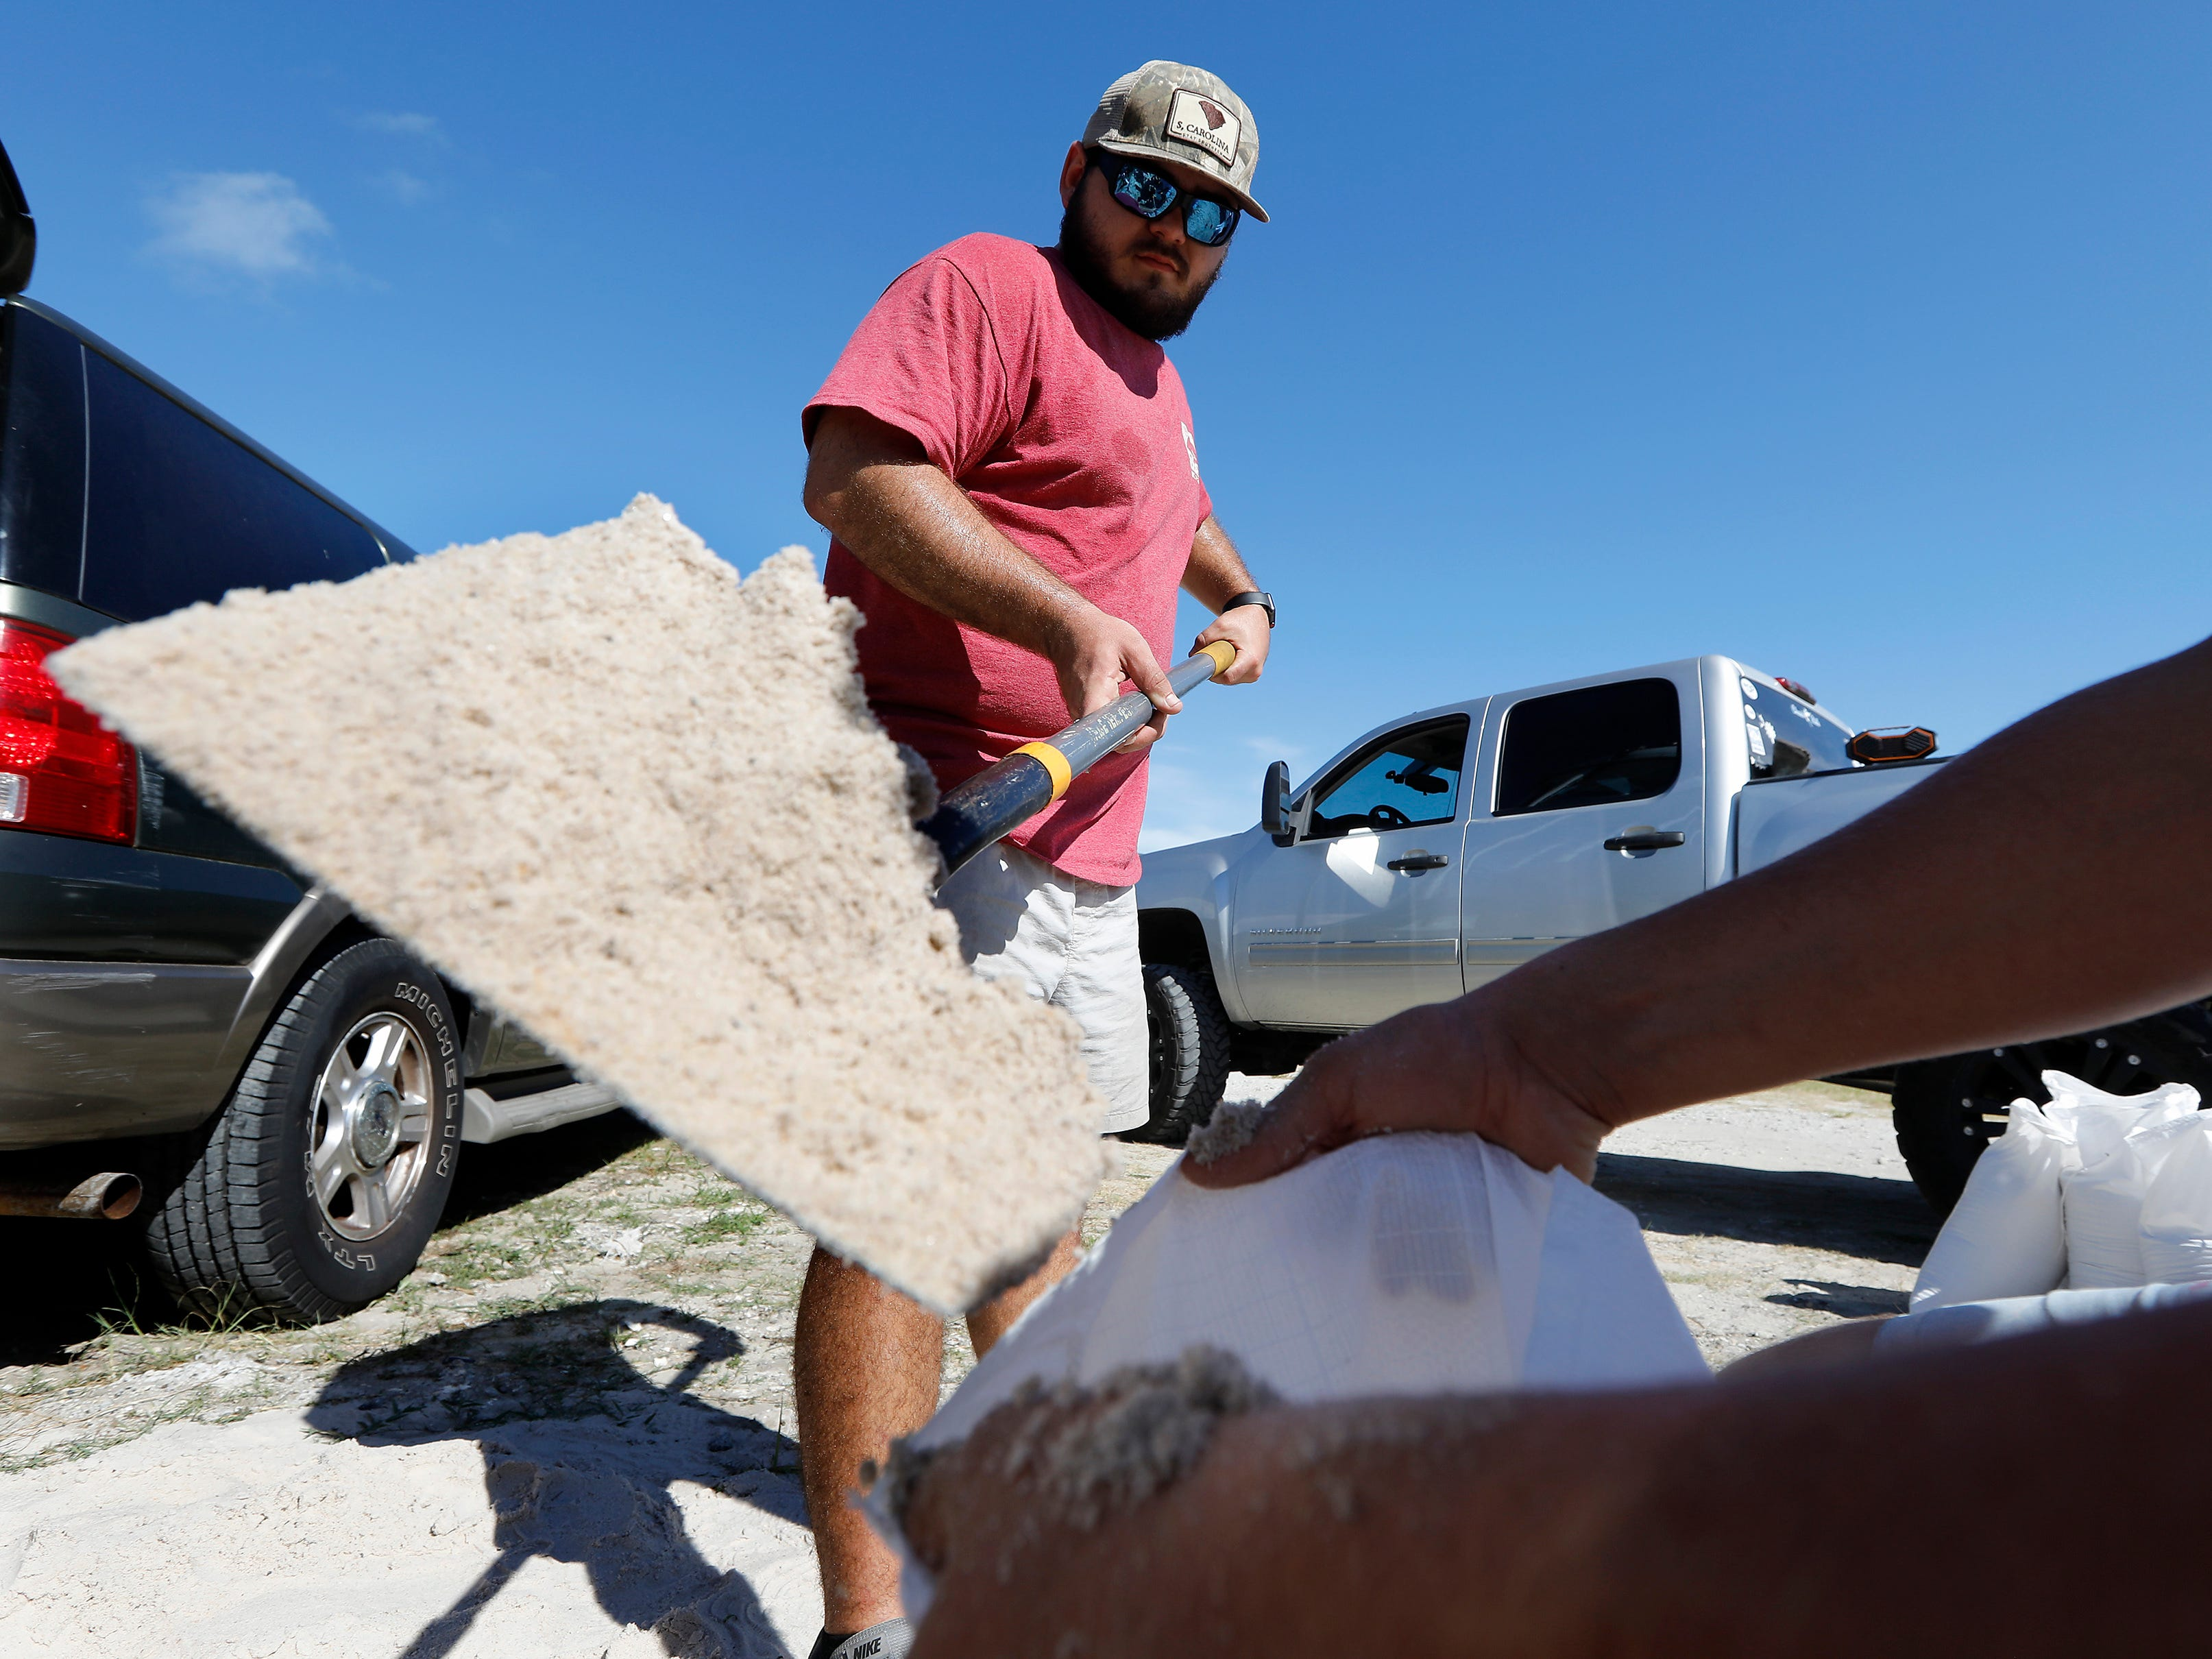 Walker Townsend, left, from the Isle of Palms, S.C., fills a sand bag while Dalton Trout holds the bag at the Isle of Palms municipal lot where the city was giving away free sand in preparation for Hurricane Florence at the Isle of Palms S.C., Monday, Sept. 10, 2018.